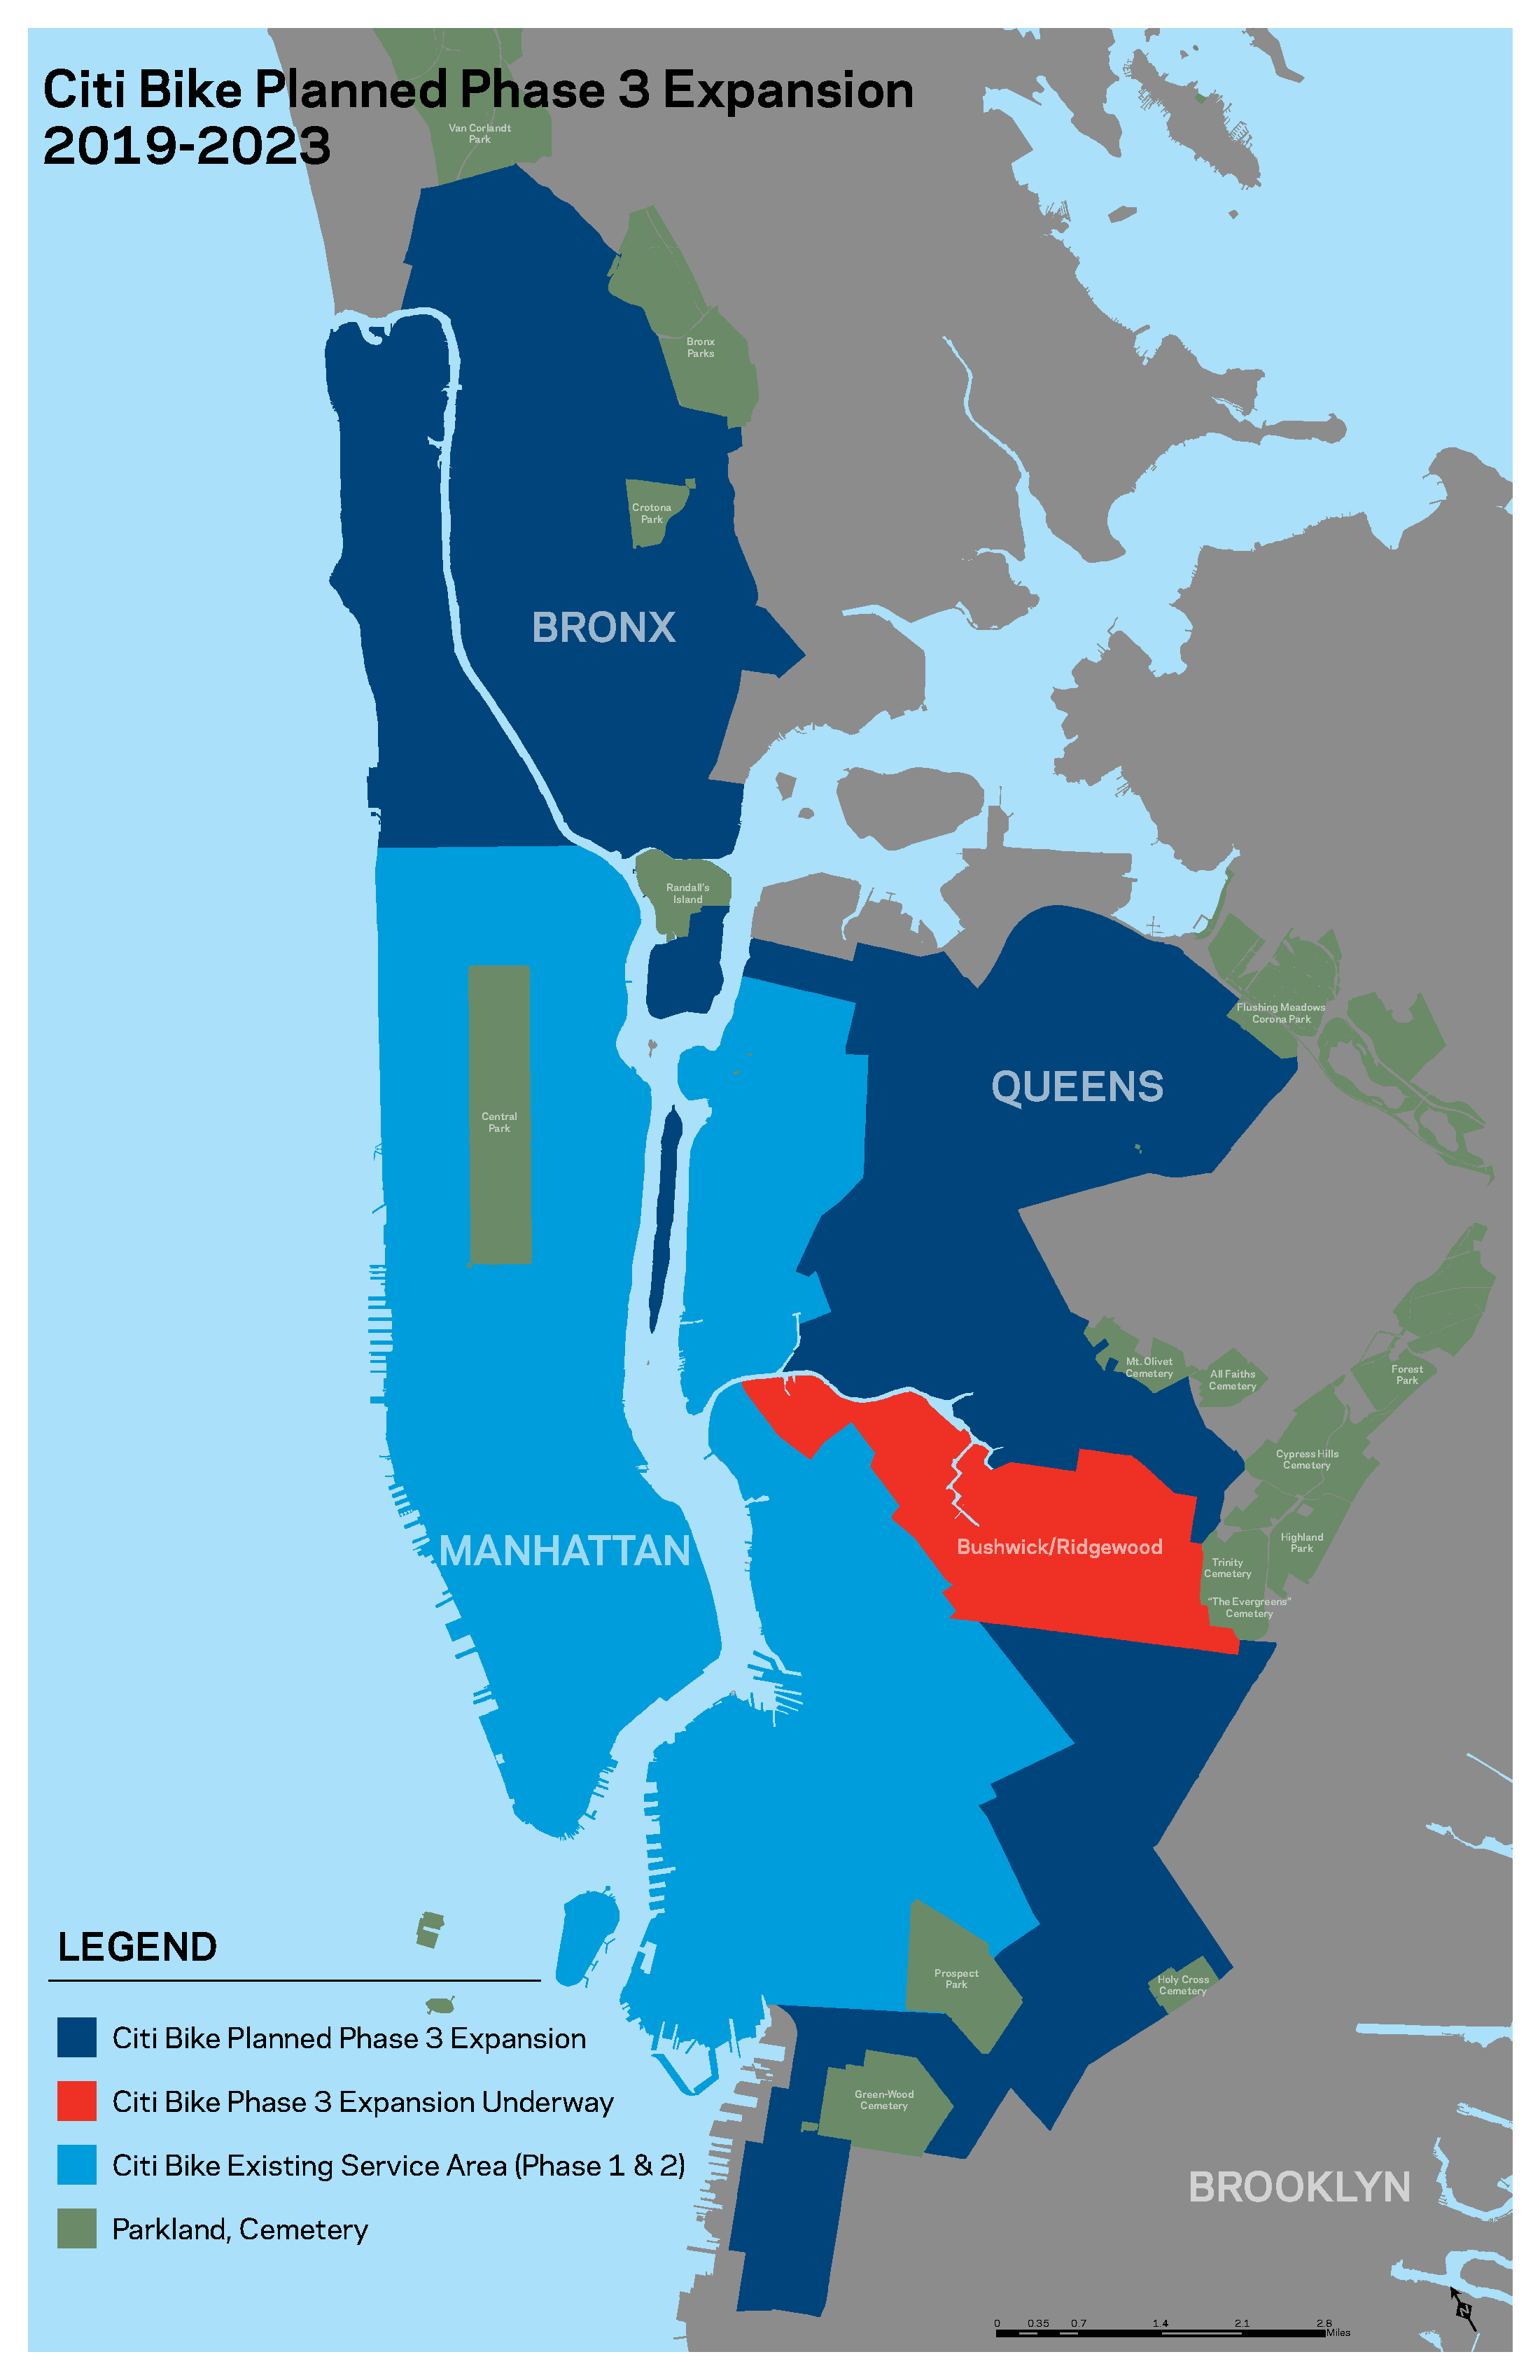 A map of the Phase 3 boundaries of Citi Bike. Citi Bike will enter the Bronx for the first time, fill out Manhattan, and continue to expand into neighborhoods like Corona & Sunset Park in Queens and Brooklyn, respectively.